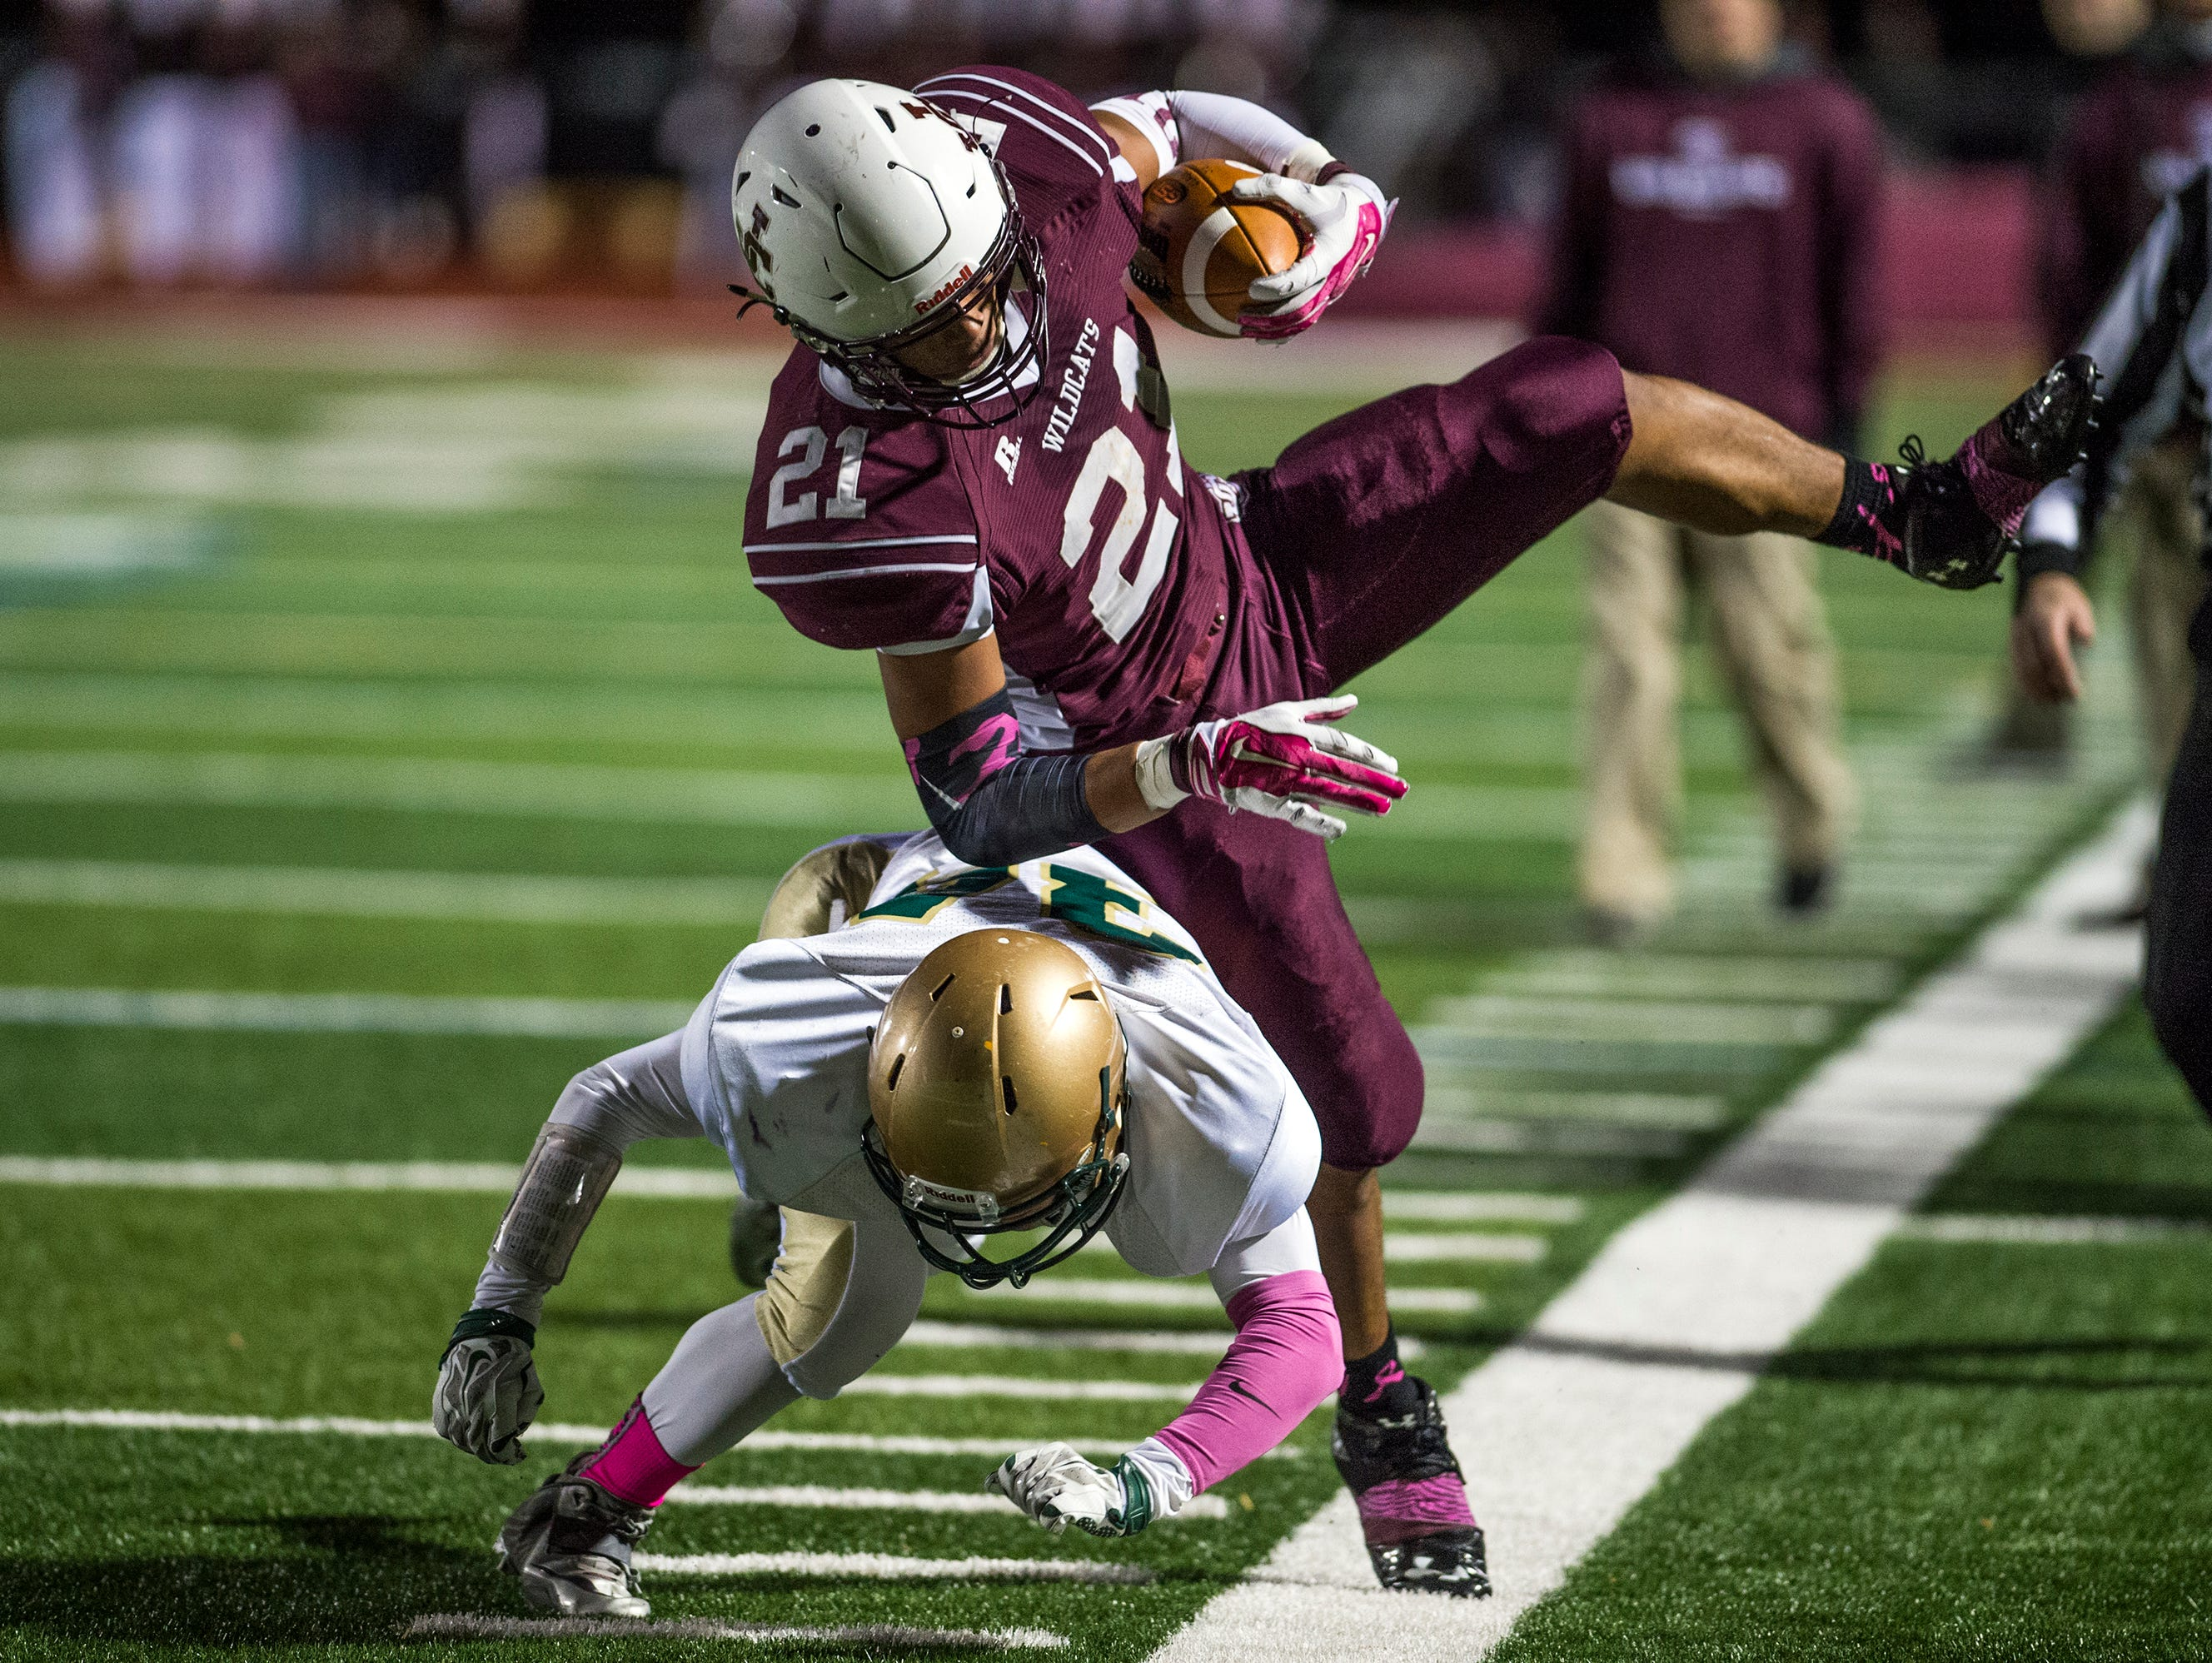 Johnson City running back Shafeeq Hosea is knocked out of bounds during the second quarter of JC's 29-6 win over Vestal in the Section 4 Class A semifinal playoff game on Friday.